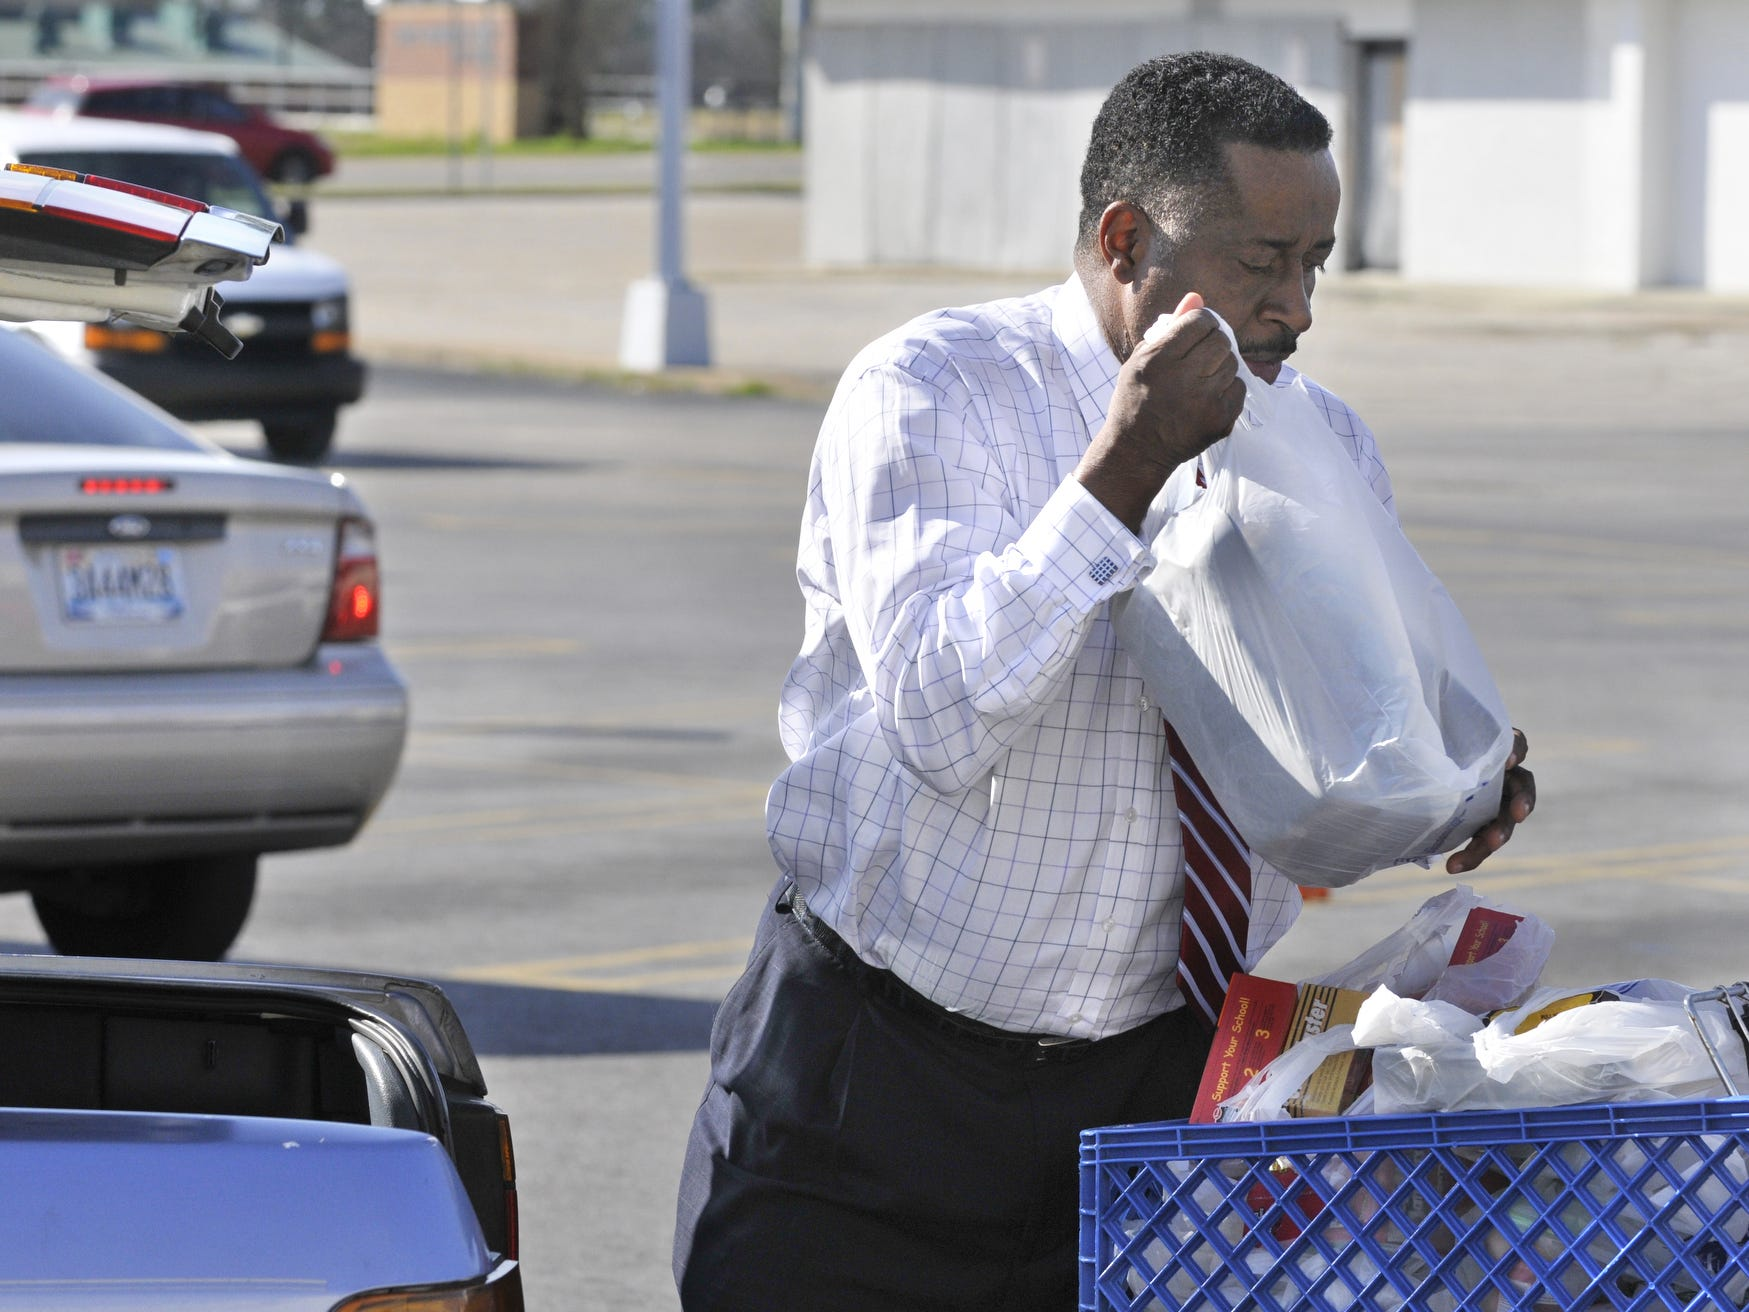 Greg Calhoun puts groceries in the trunk of a customer's car at his Calhoun Foods store on Fairview Avenue in Montgomery, Ala. on Wednesday, Feb. 8, 2012. (Montgomery Advertiser, Lloyd Gallman)